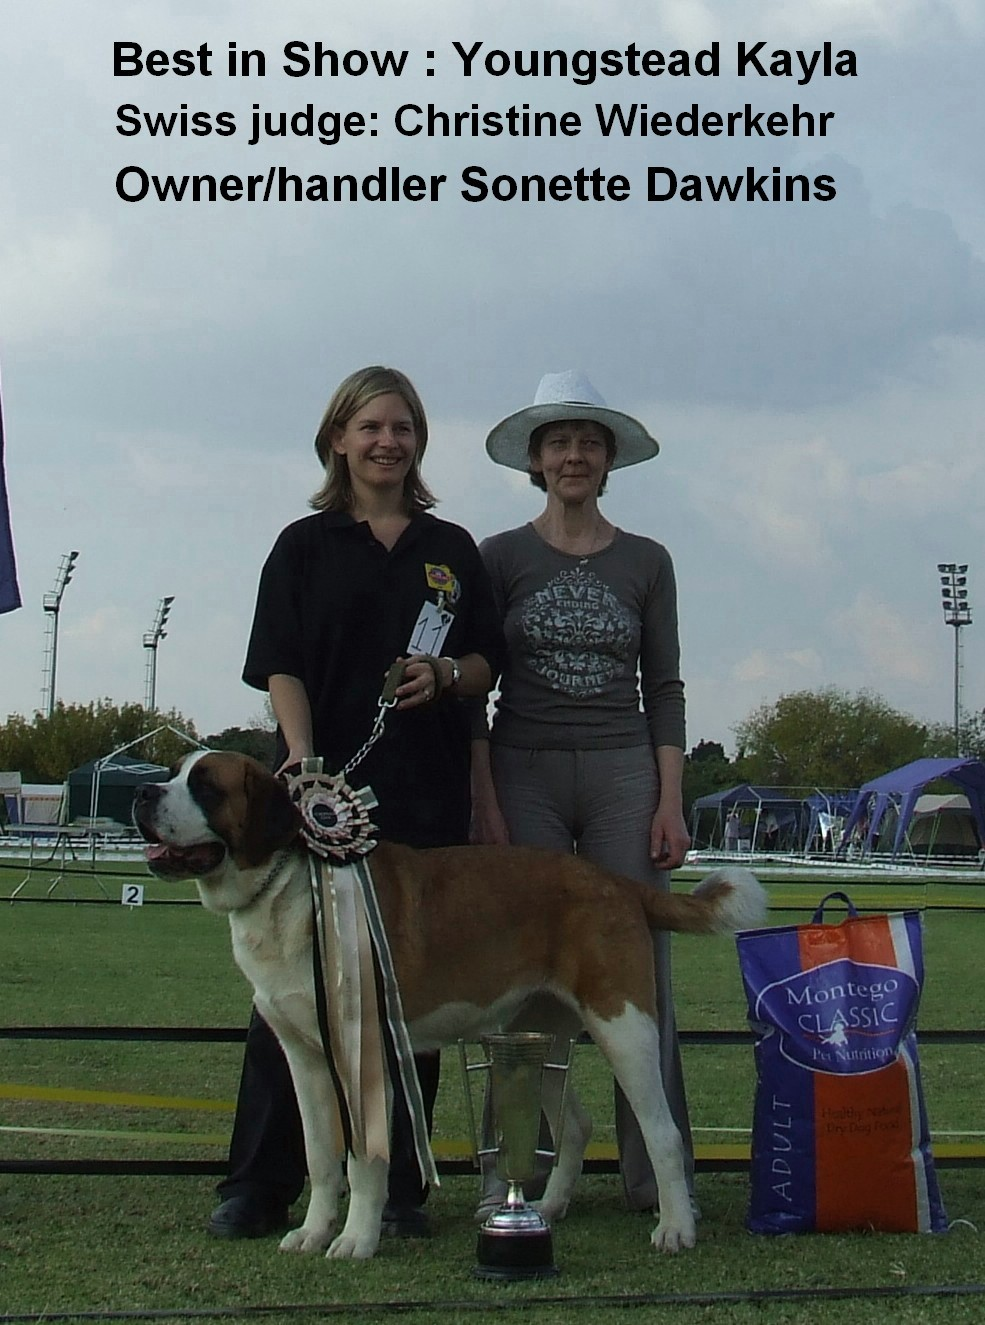 2007 Saint Bernard Champion Show Christine Wiederkehr Switzerland